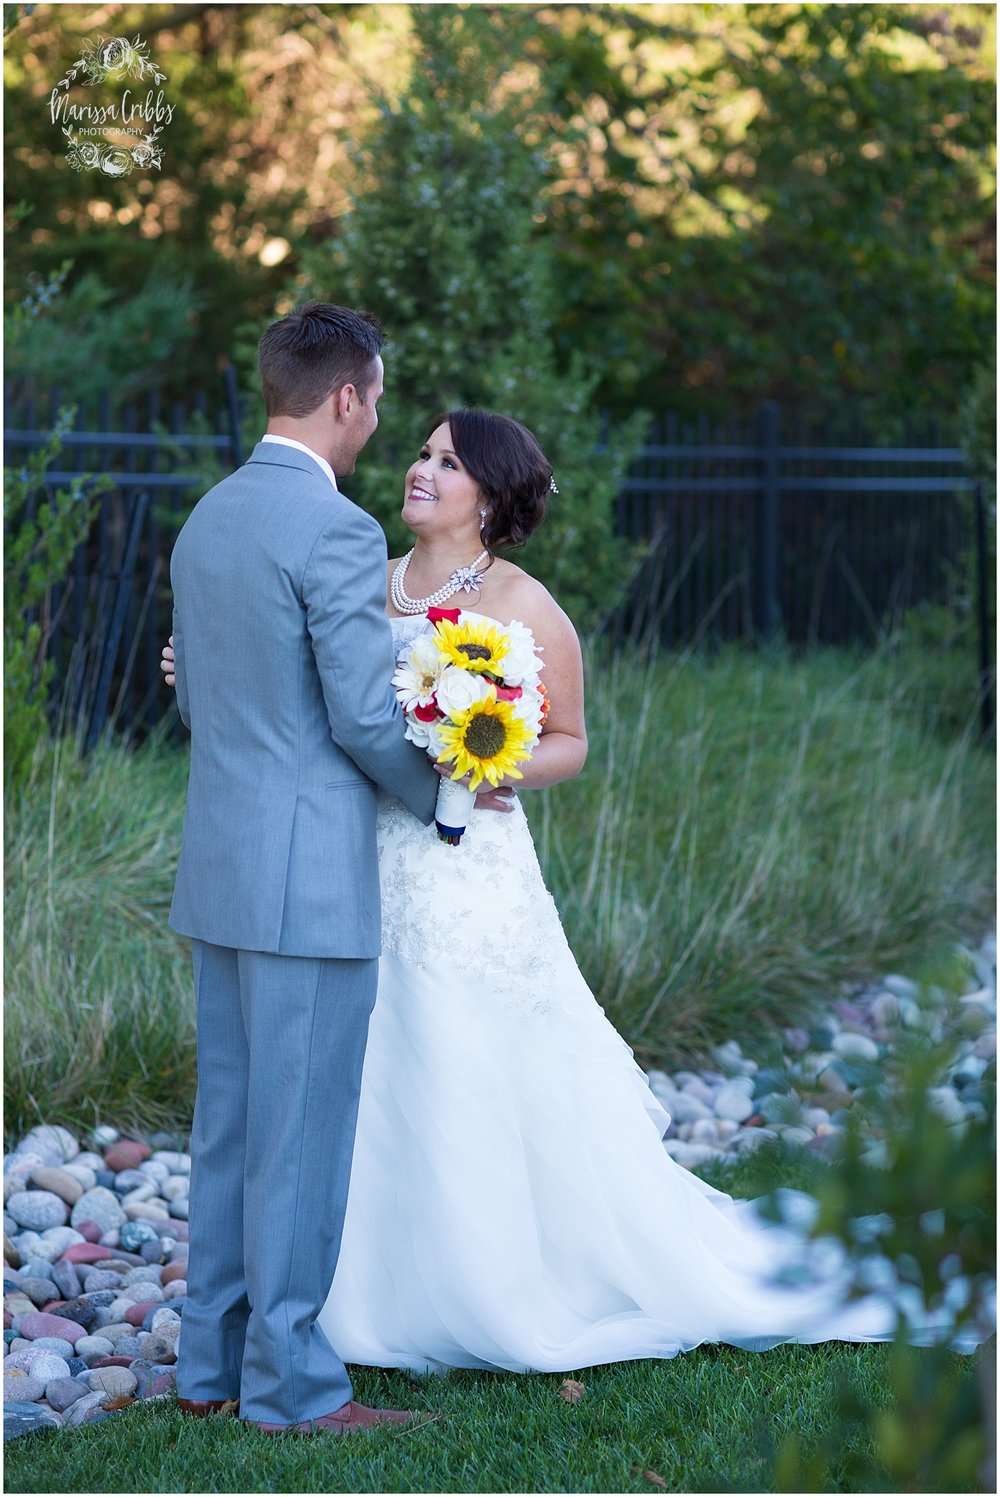 Sarah & Troy | Wichita KS Wedding Photography | Noah's Event Venue Wichita | Marissa Cribbs Photography_1009.jpg